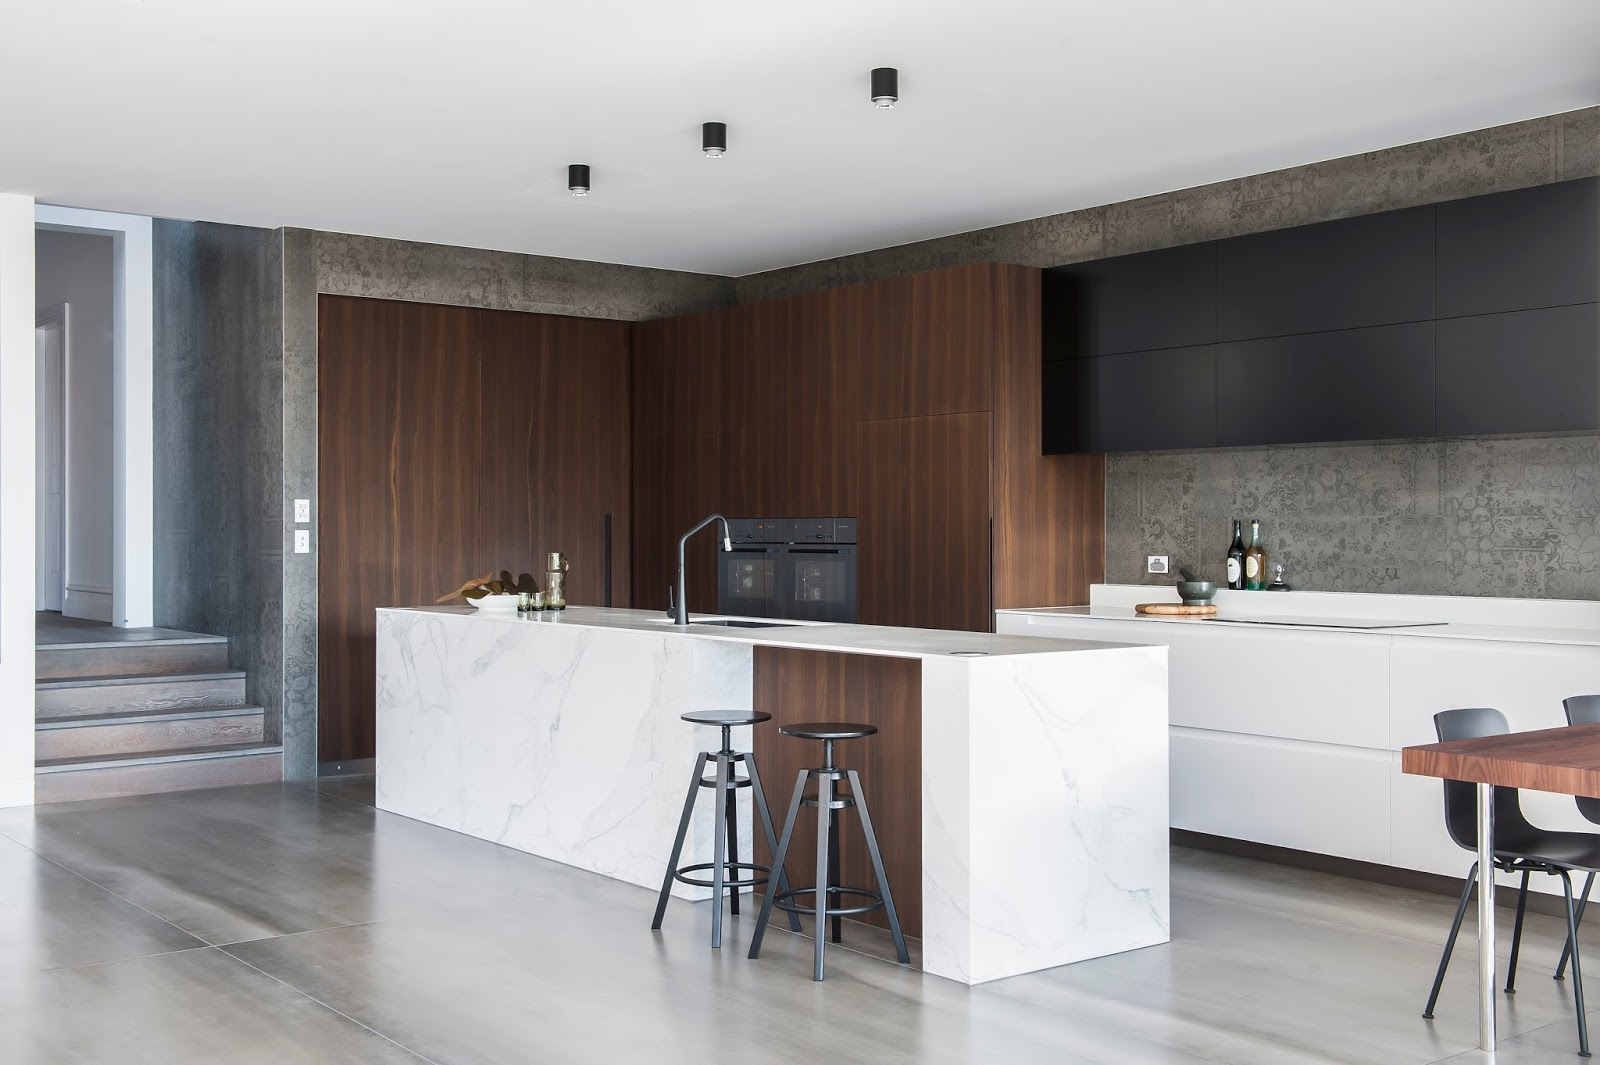 Deavita Küchenfronten Minosa Amazing Kitchen Design Leaves Us With House Envy